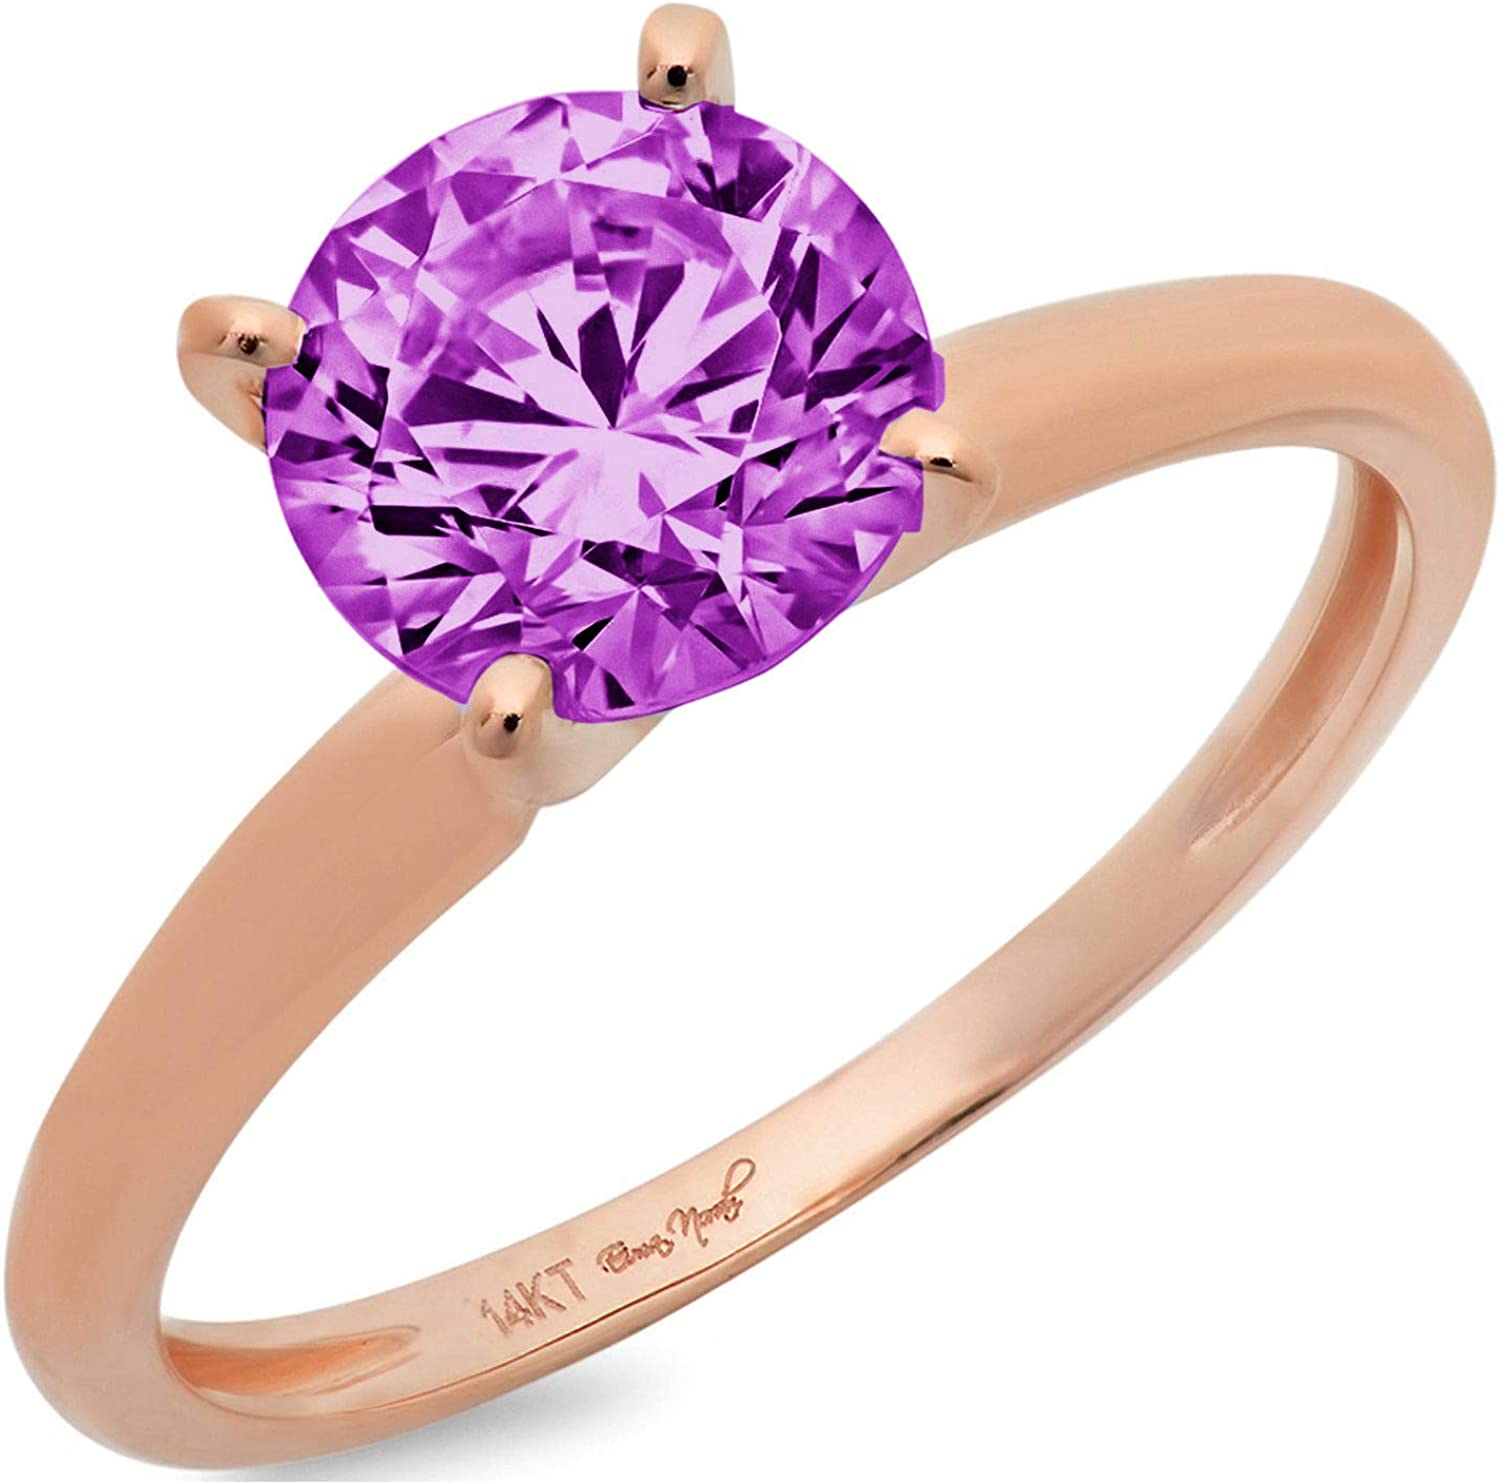 2.95 ct Brilliant Round Cut Solitaire Flawless Simulated CZ Purple Alexandrite Ideal VVS1 4-Prong Engagement Wedding Bridal Promise Anniversary Designer Ring in Solid 14k Rose Gold for Women